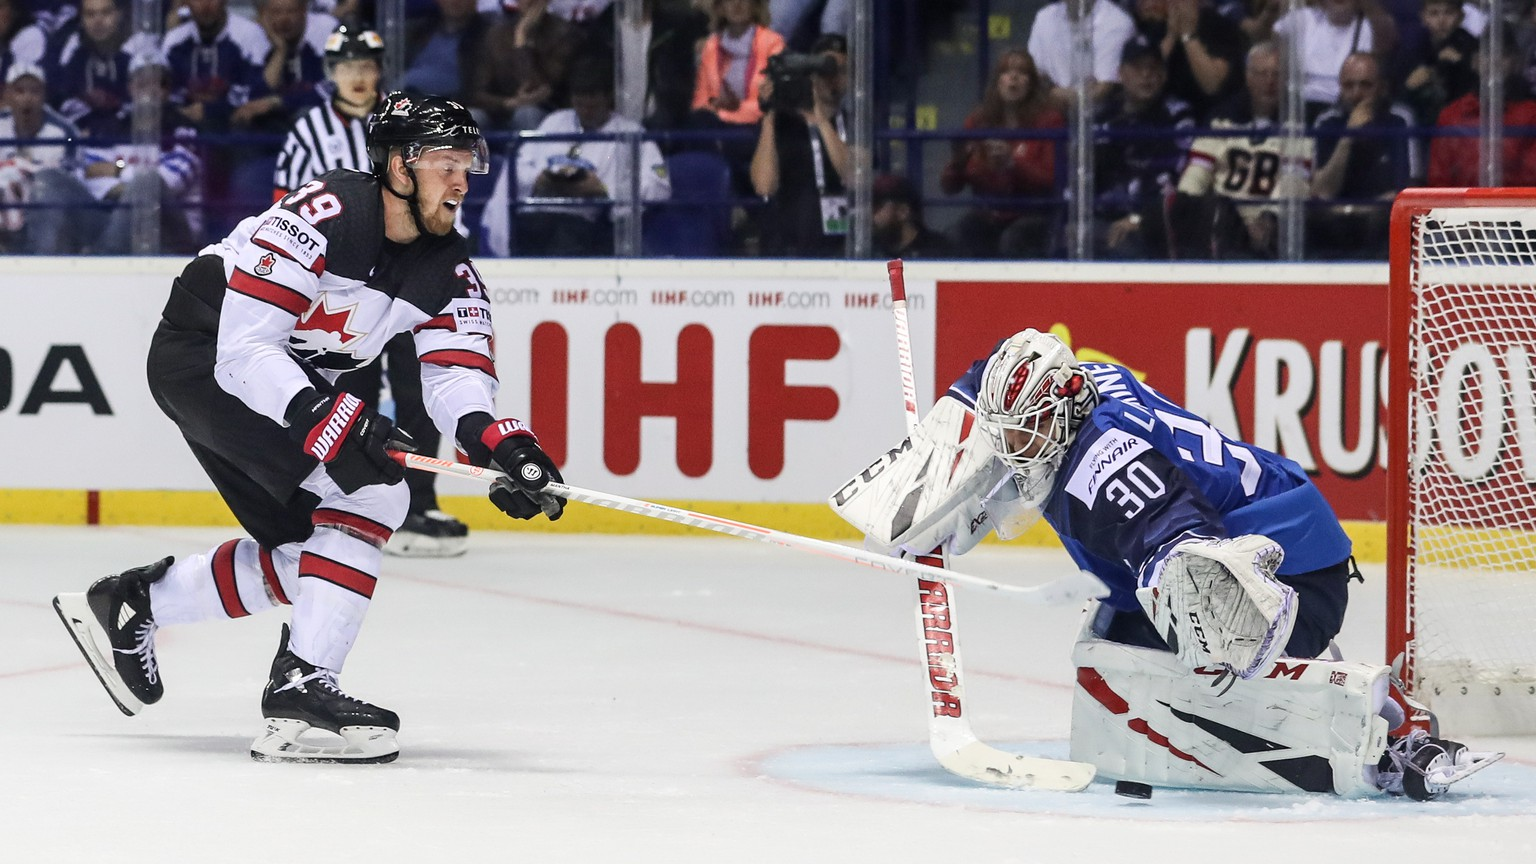 epa07561278 Anthony Mantha of Canada (L) in action against goalkeeper Kevin Lankinen of Finland (R) during the IIHF World Championship group A ice hockey match between Finland and Canada at the Steel Arena in Kosice, Slovakia, 10 May 2019.  EPA/MARTIN DIVISEK